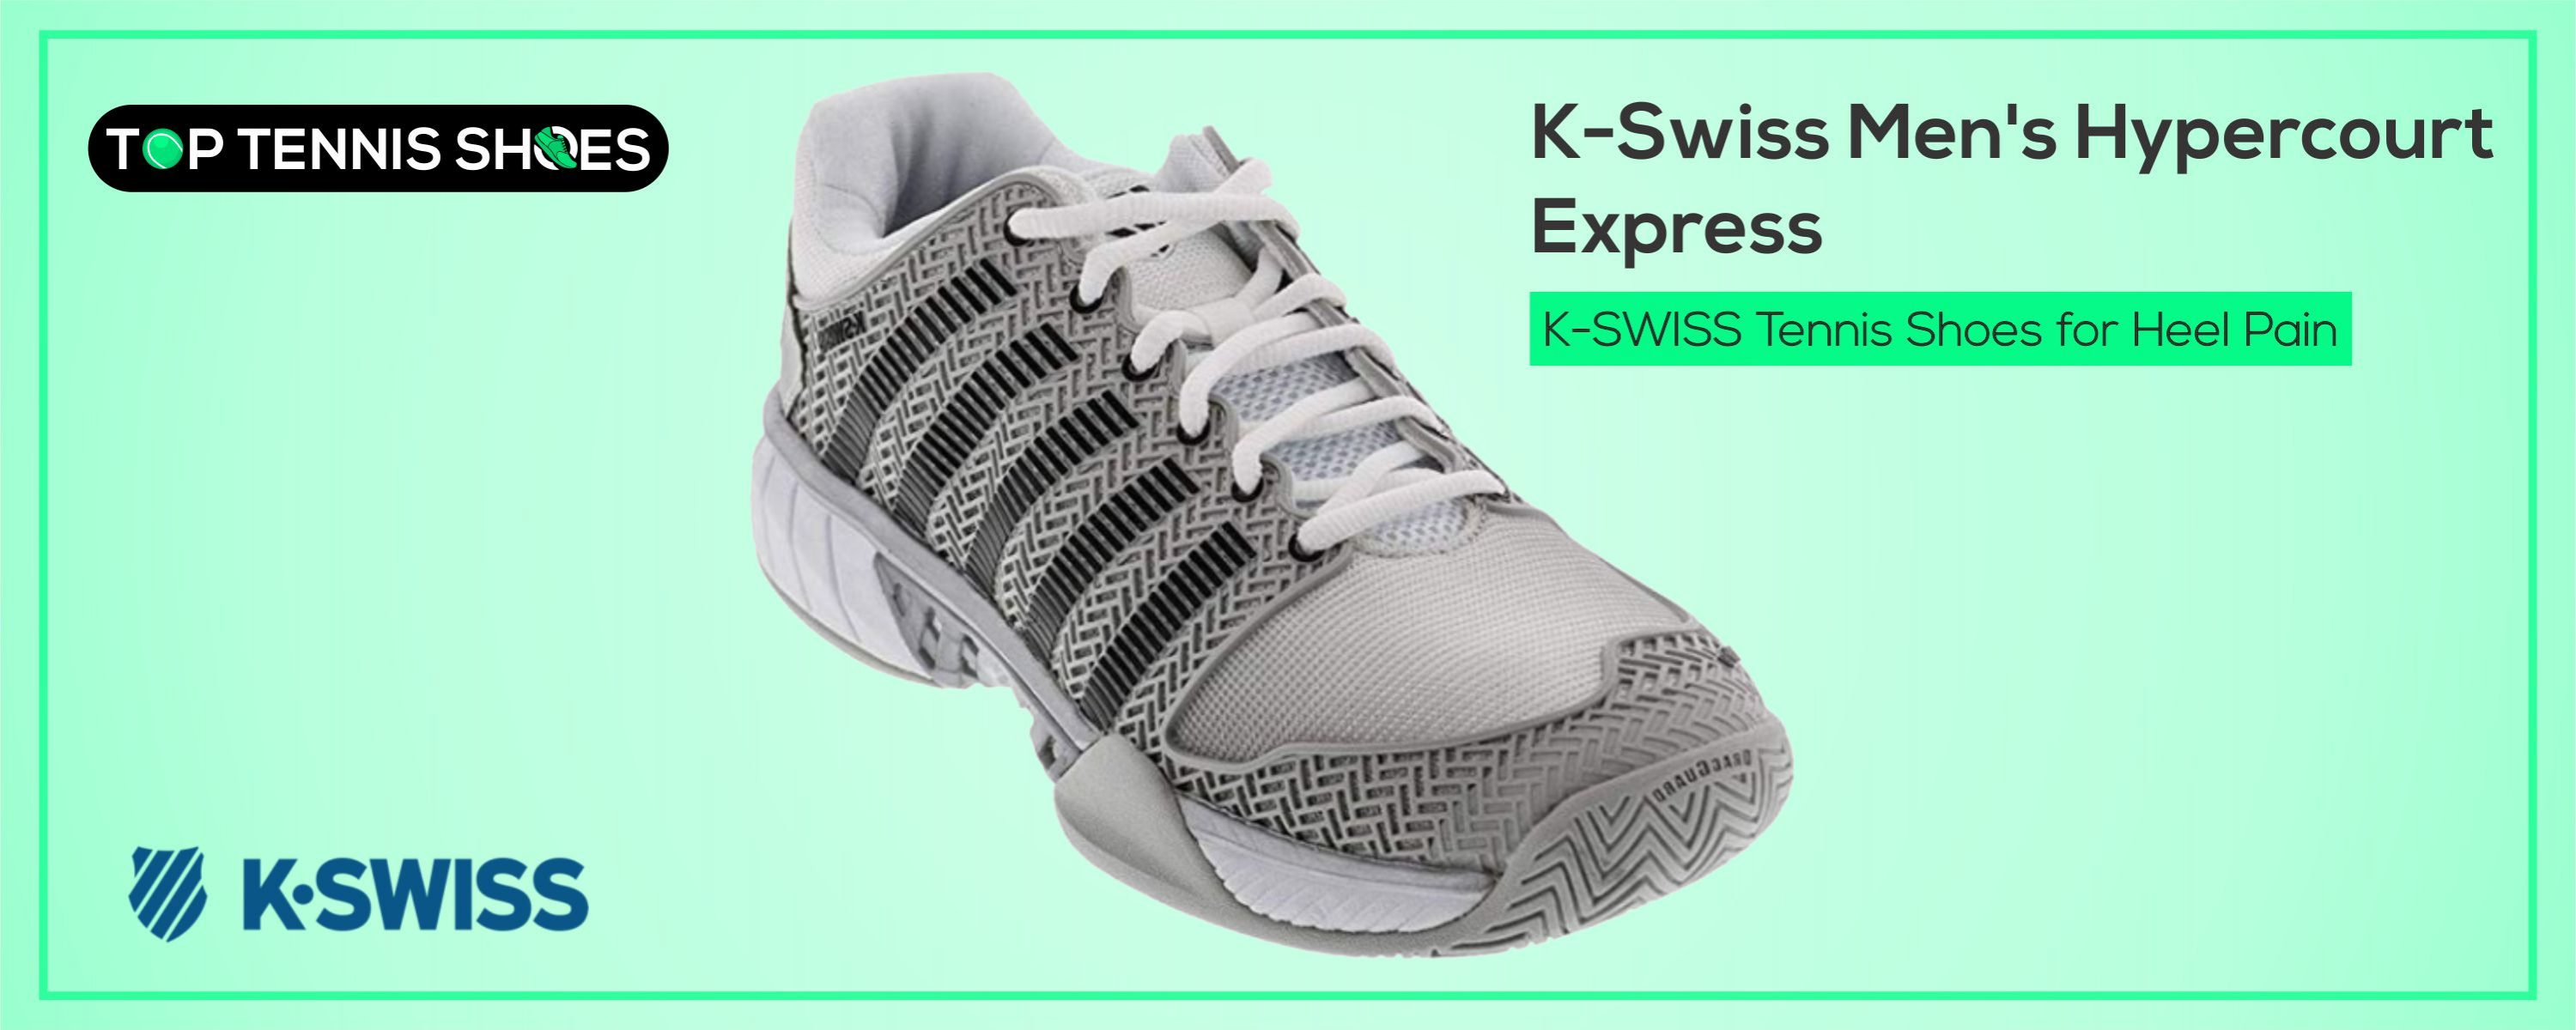 good tennis shoes for heel pain buyers guide